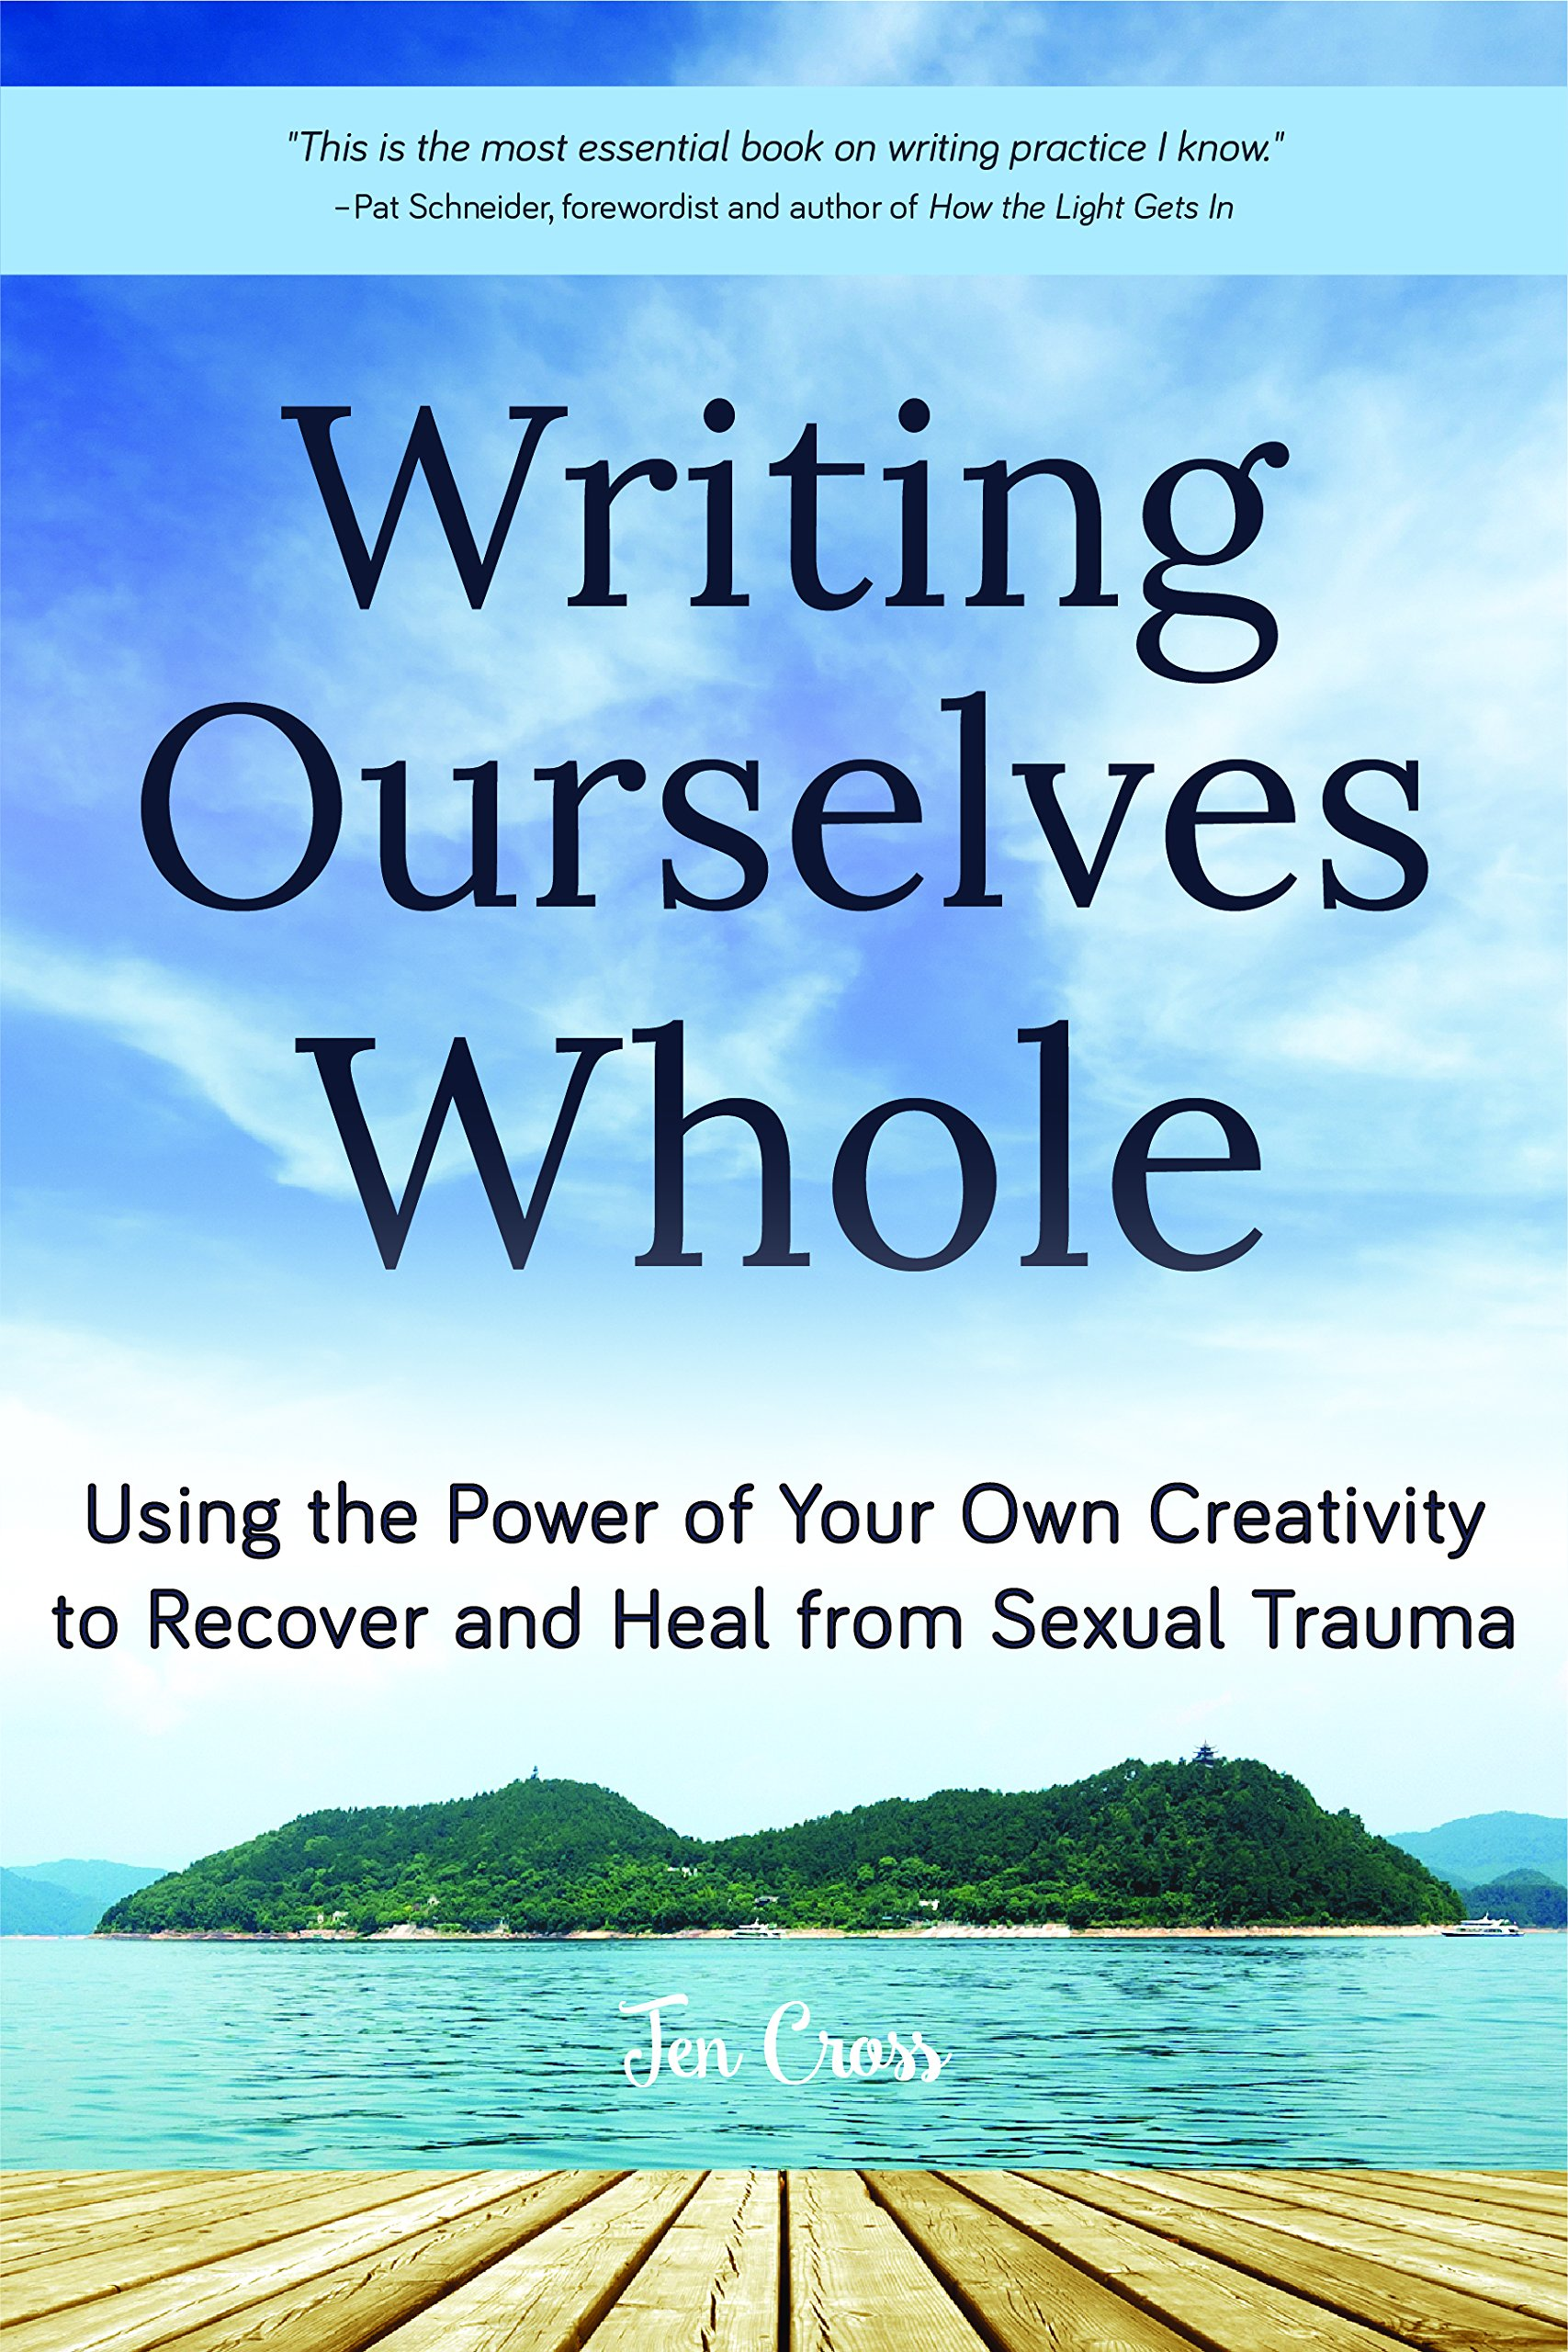 Cover of Writing Ourselves Whole book, the view of a small island from a wooden deck, you can see the edge of the deck, water, and a green island in the distance. The title reads Writing Ourselves Whole: Using the Power of Your Own Creativity to Recover and Heal from Sexual Trauma, Jen Cross.